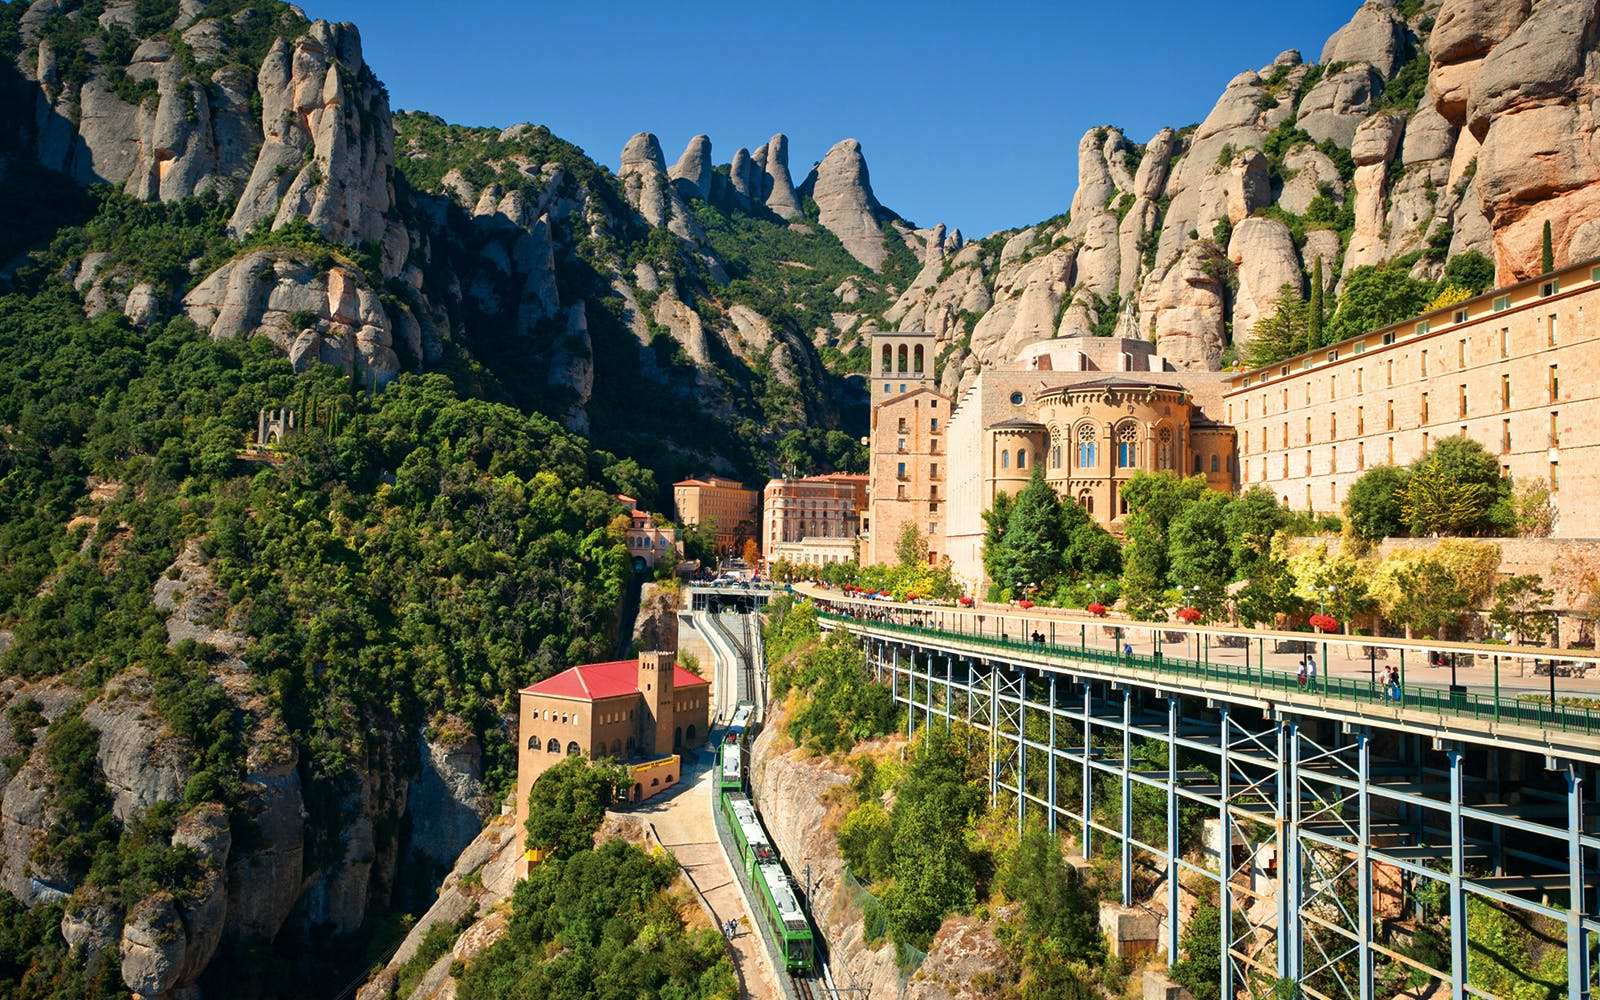 montserrat day trip from barcelona with cog wheel train ride-1